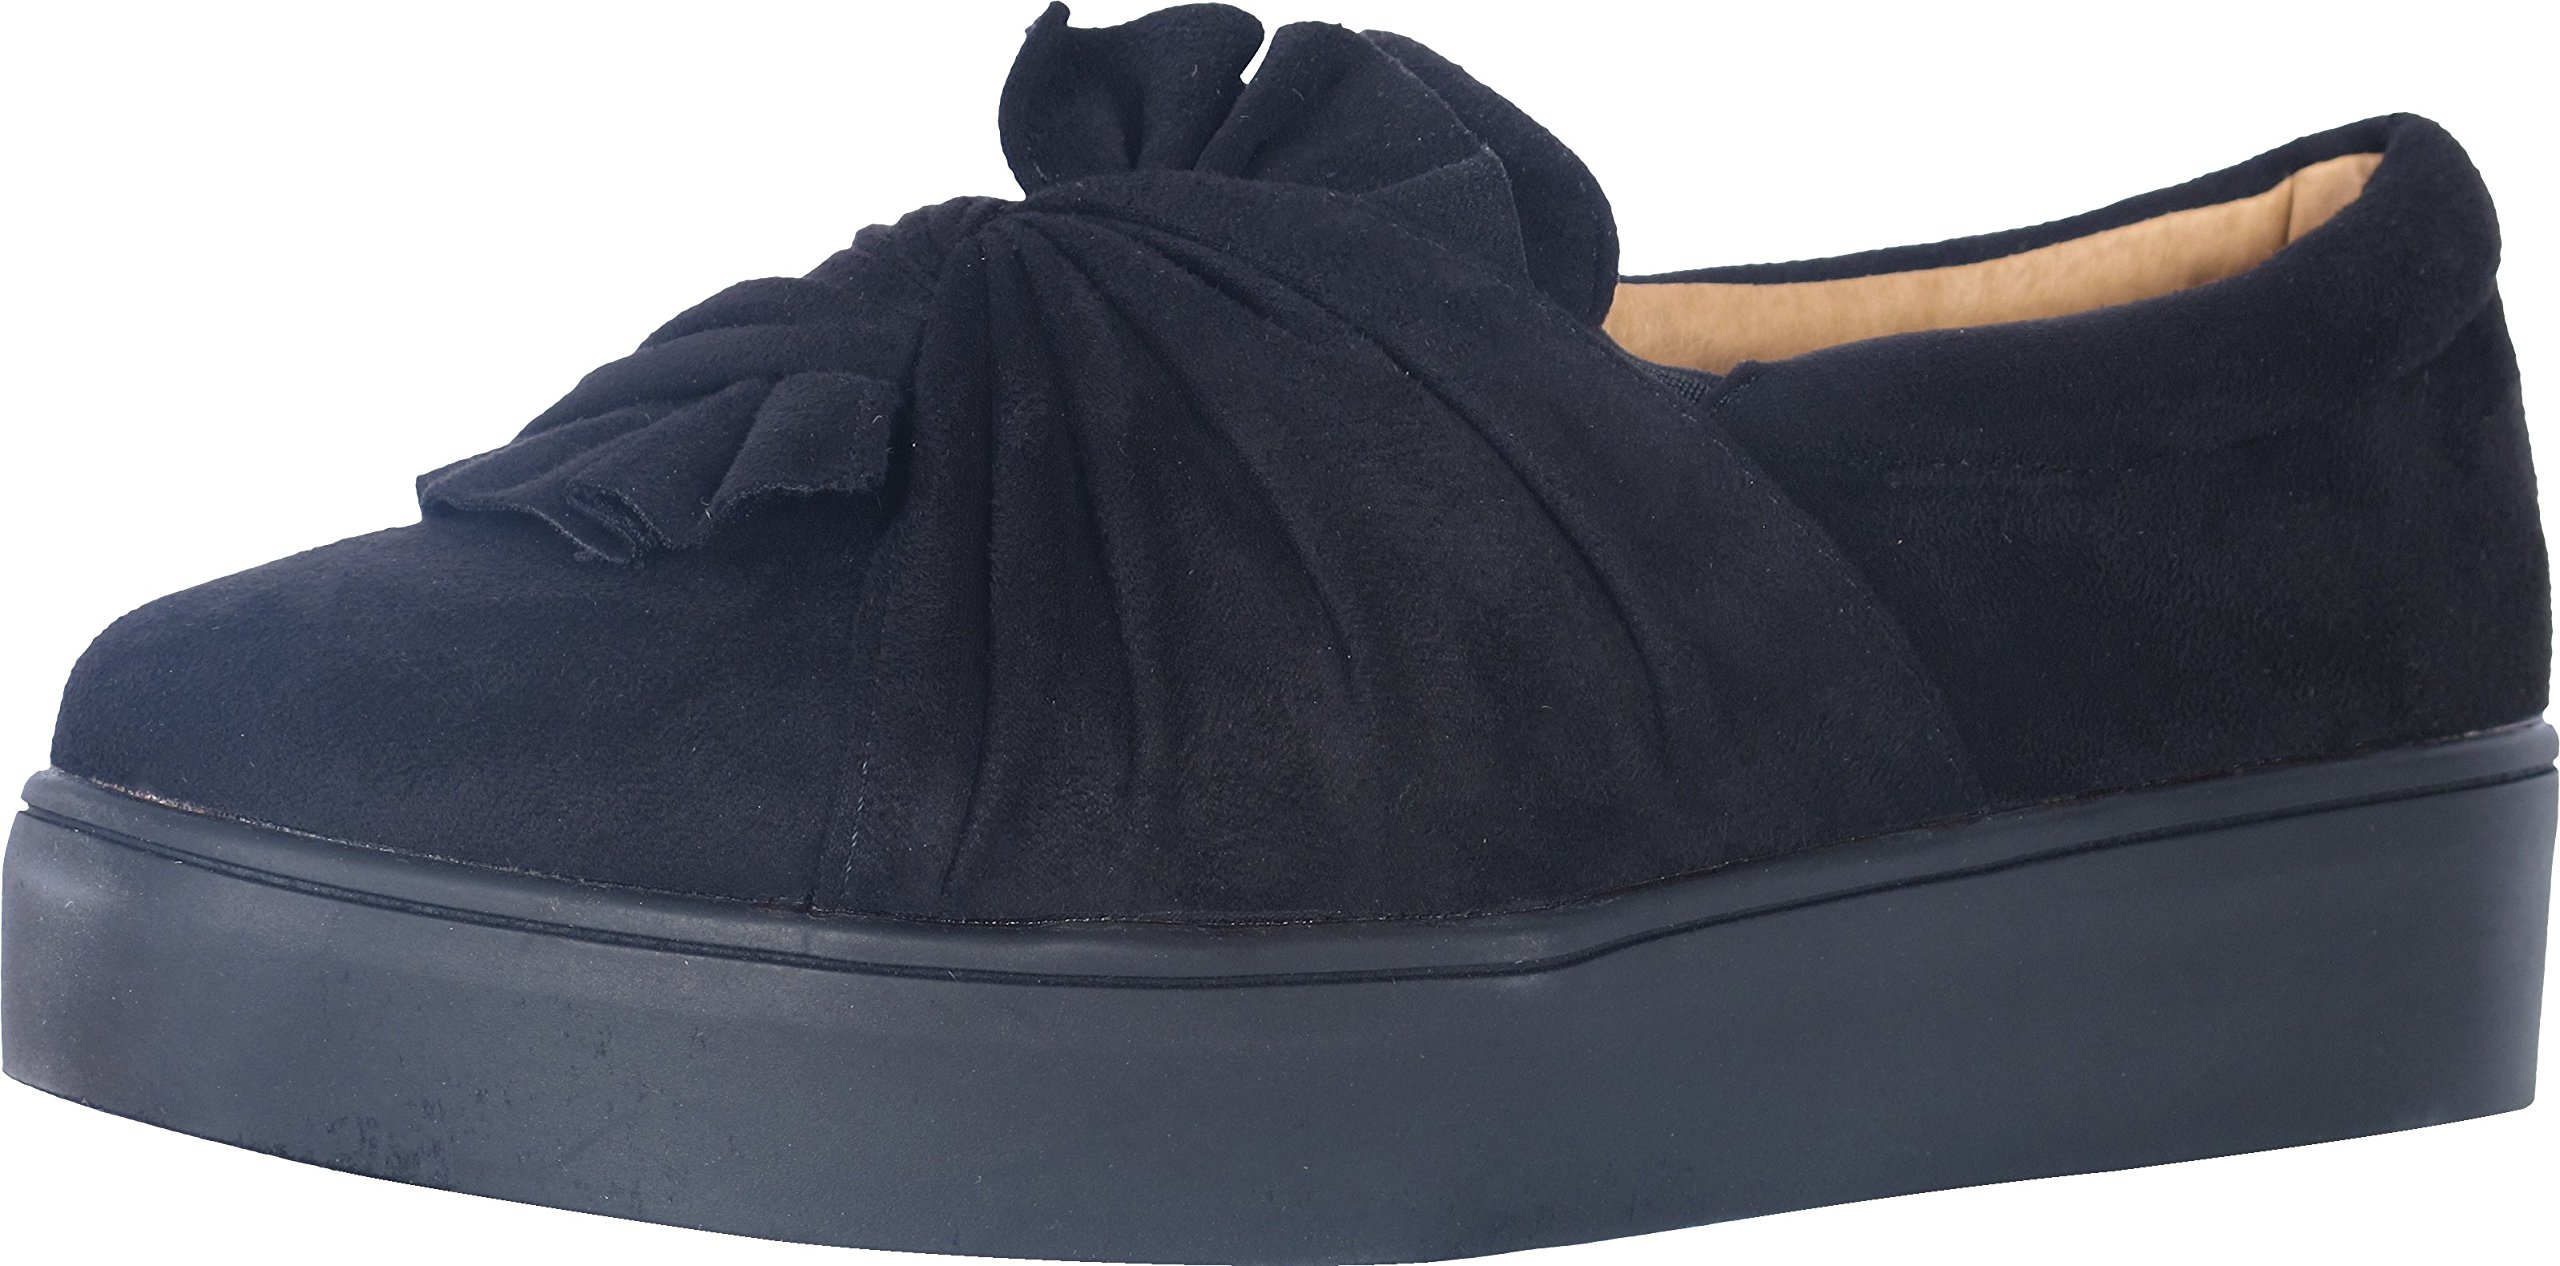 Catherine Malandrino Women's Knotted Slip-On Fashion Sneakers, Black Suede, Size 8.5 B(M) US'